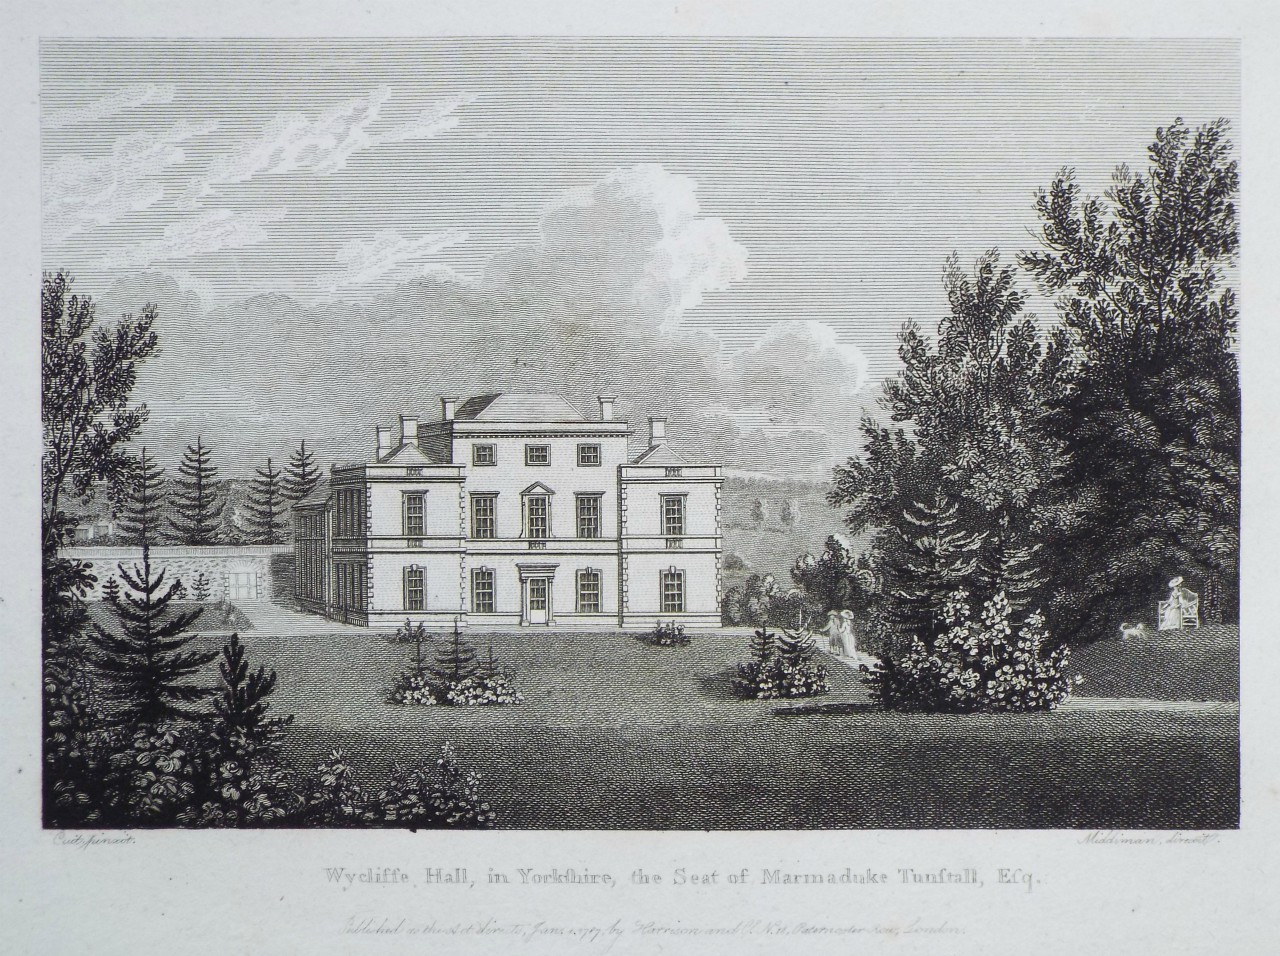 Print - Wycliffe Hall, in Yorkshire, the Seat of Marmaduke Tunstall, Esq. -